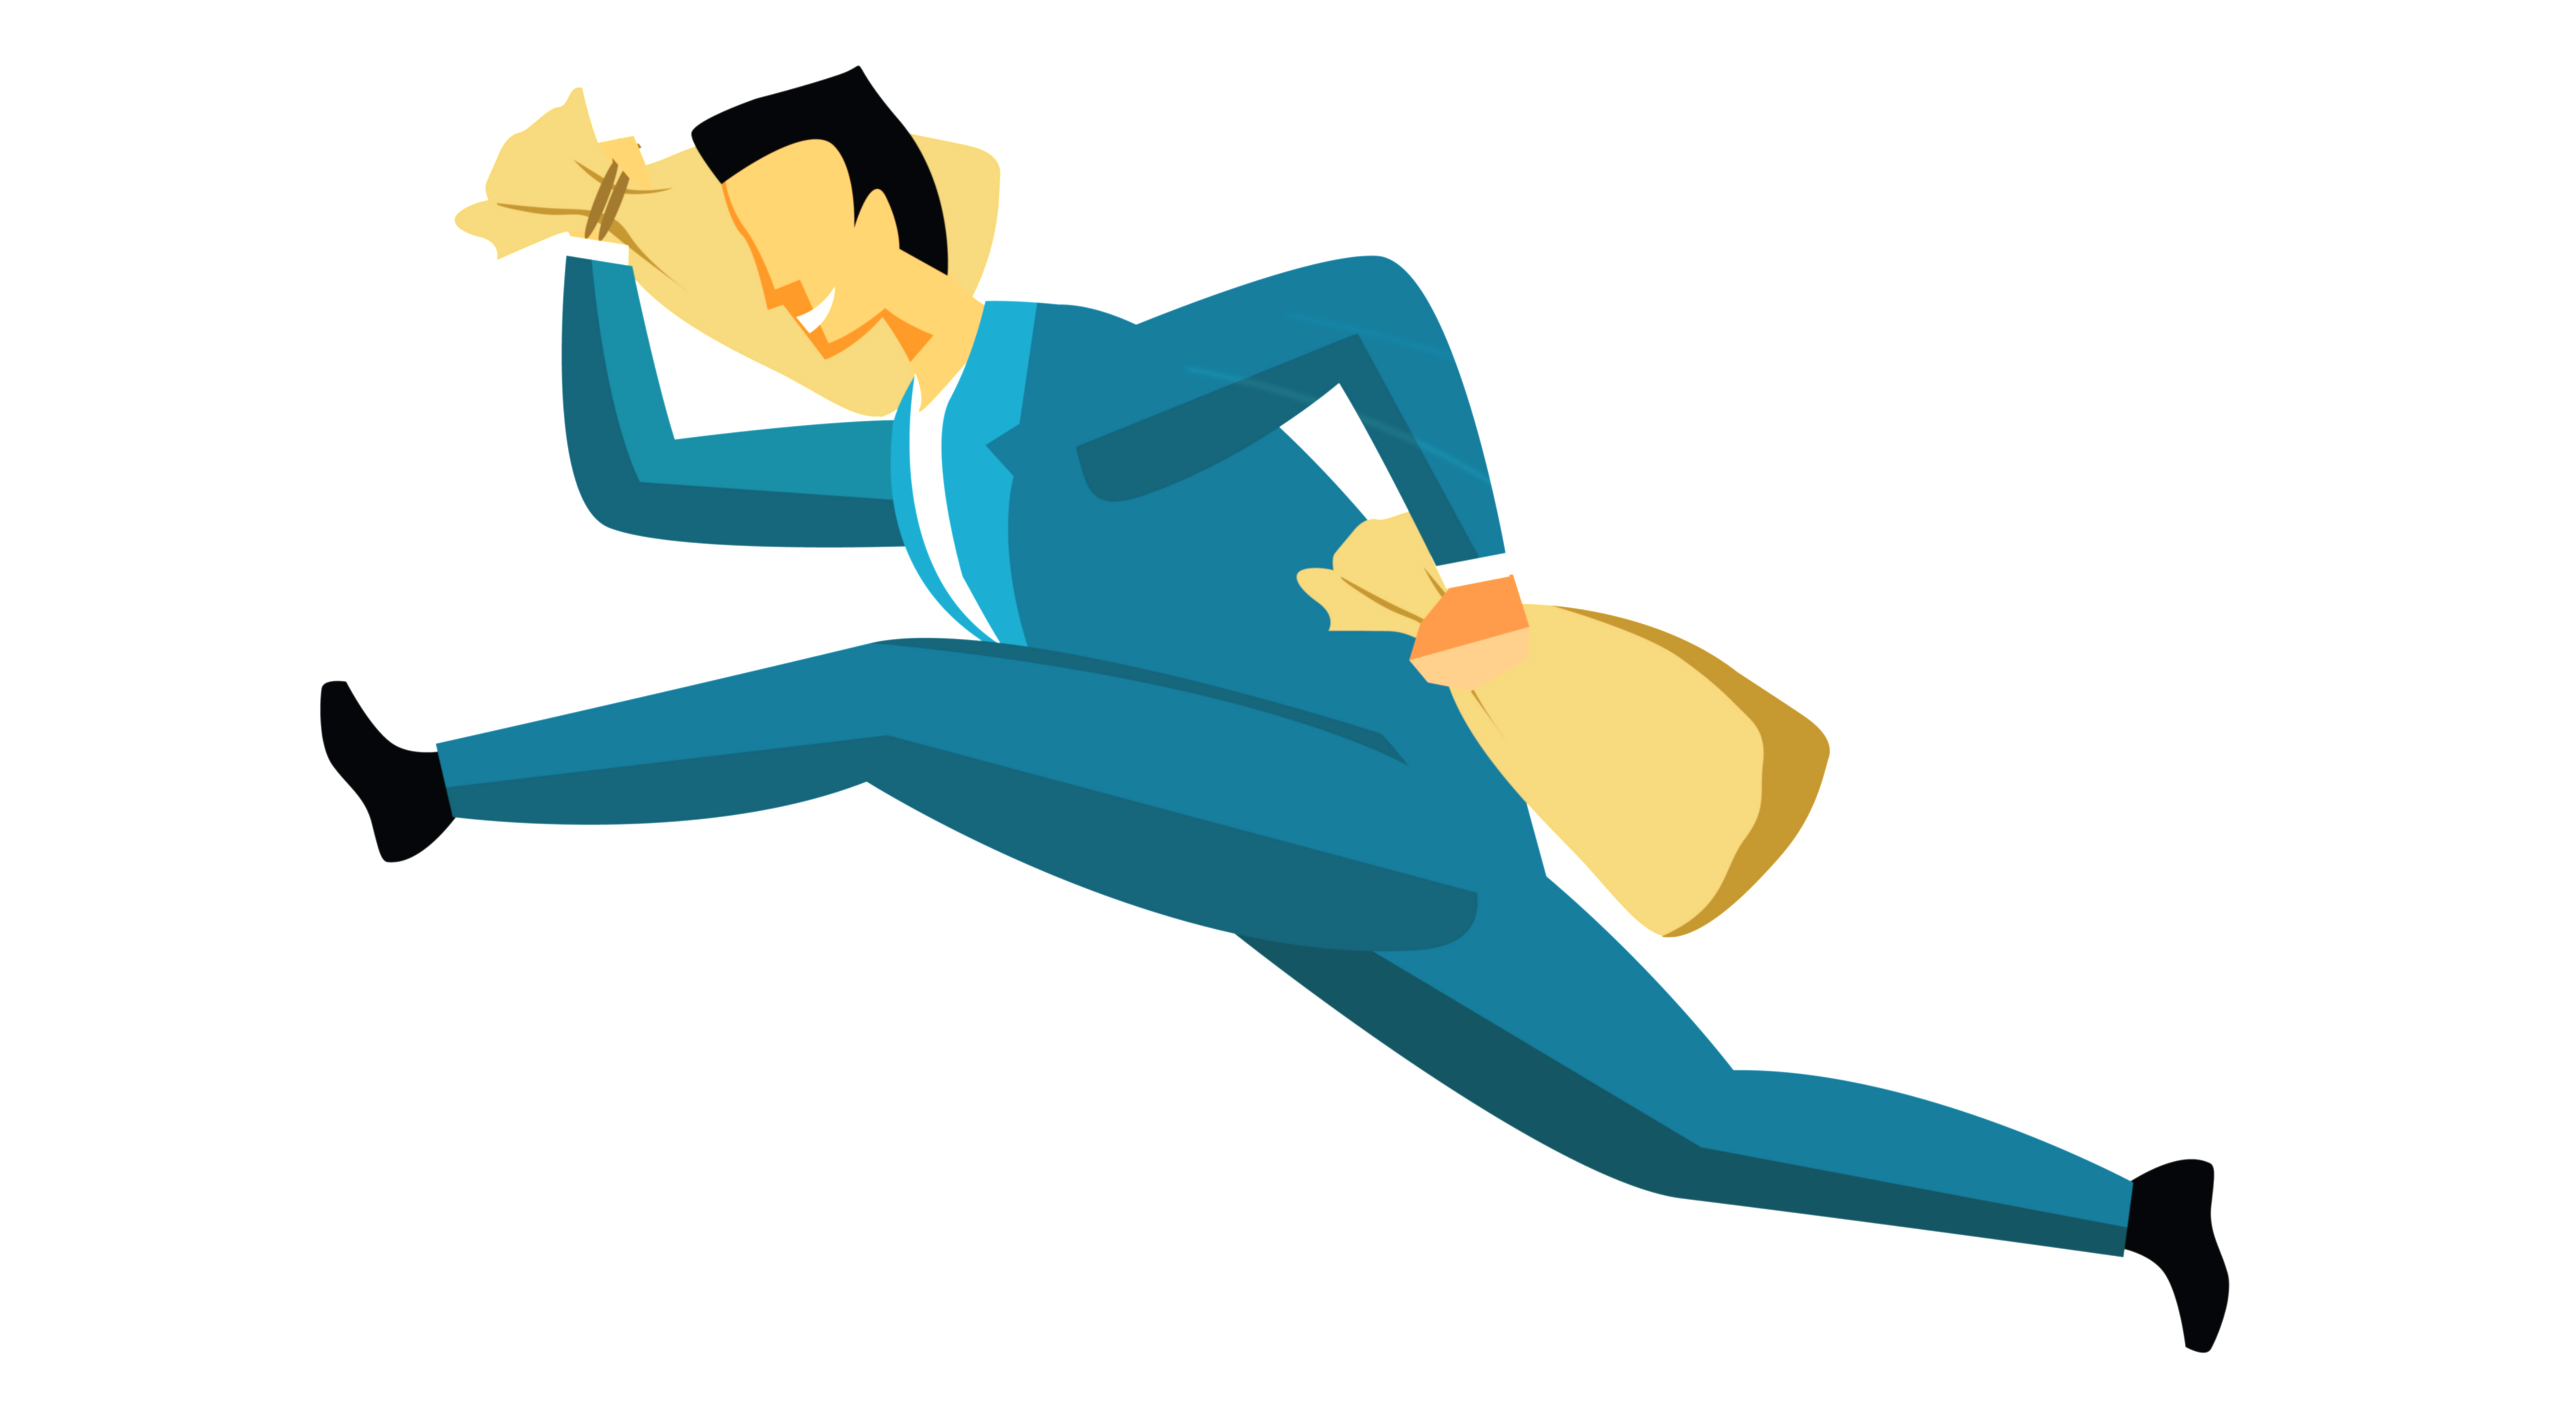 movement clipart people